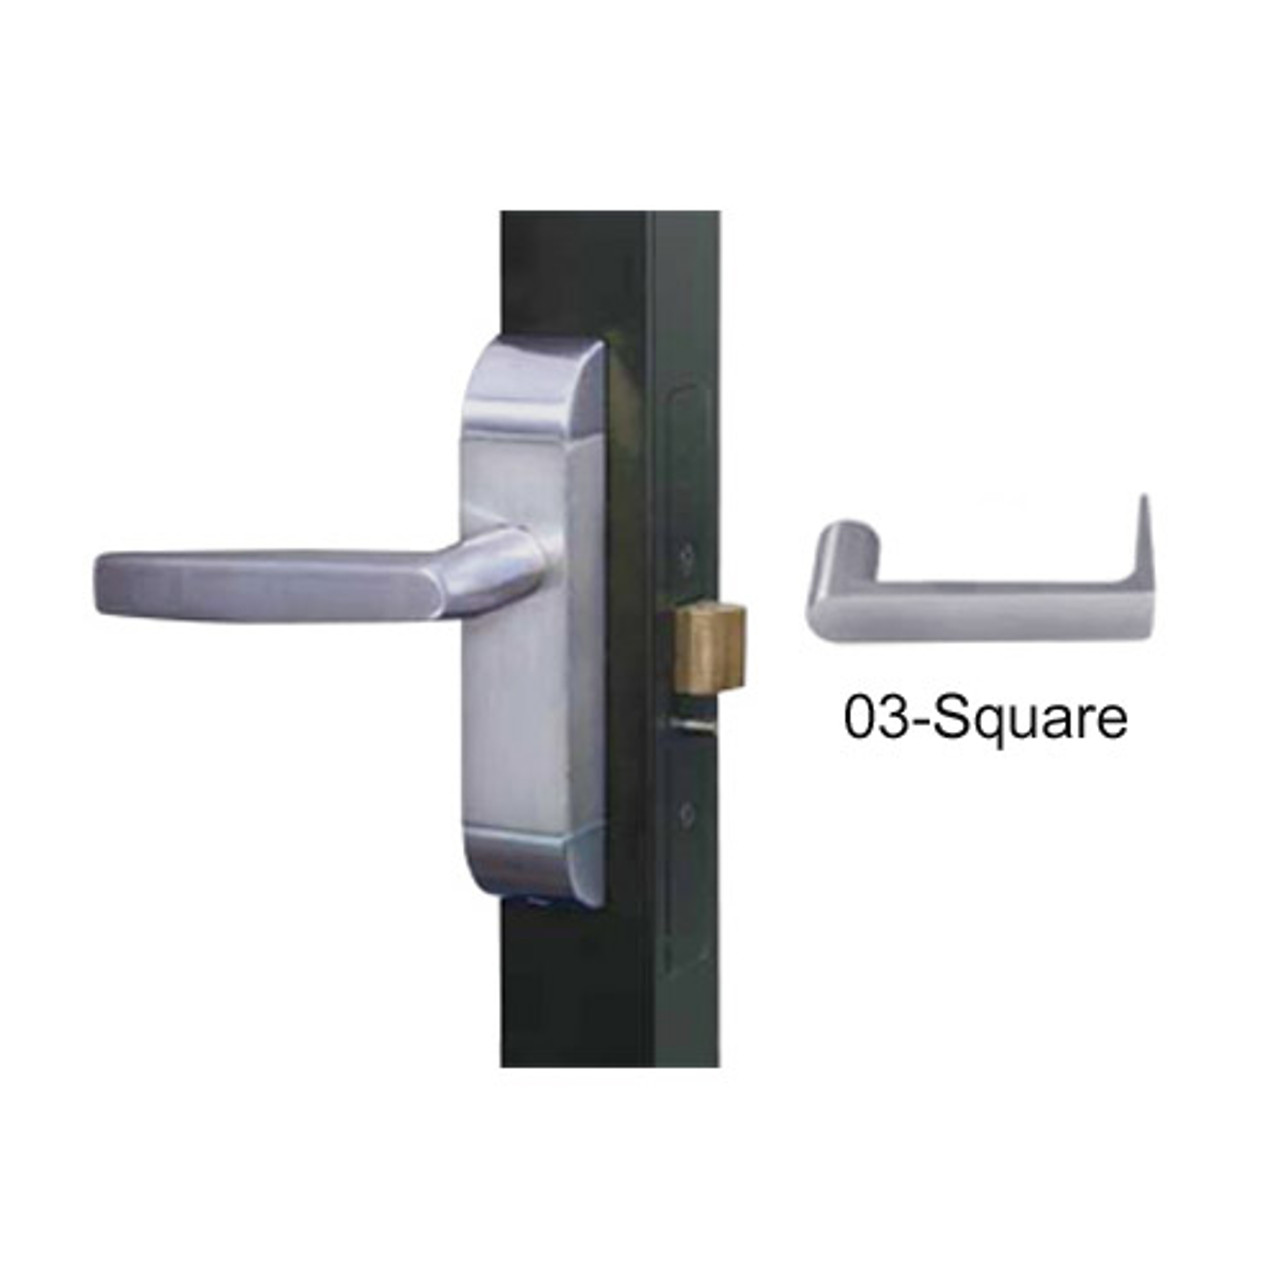 4600M-03-542-US32D Adams Rite Heavy Duty Square Deadlatch Handles in Satin Stainless Finish